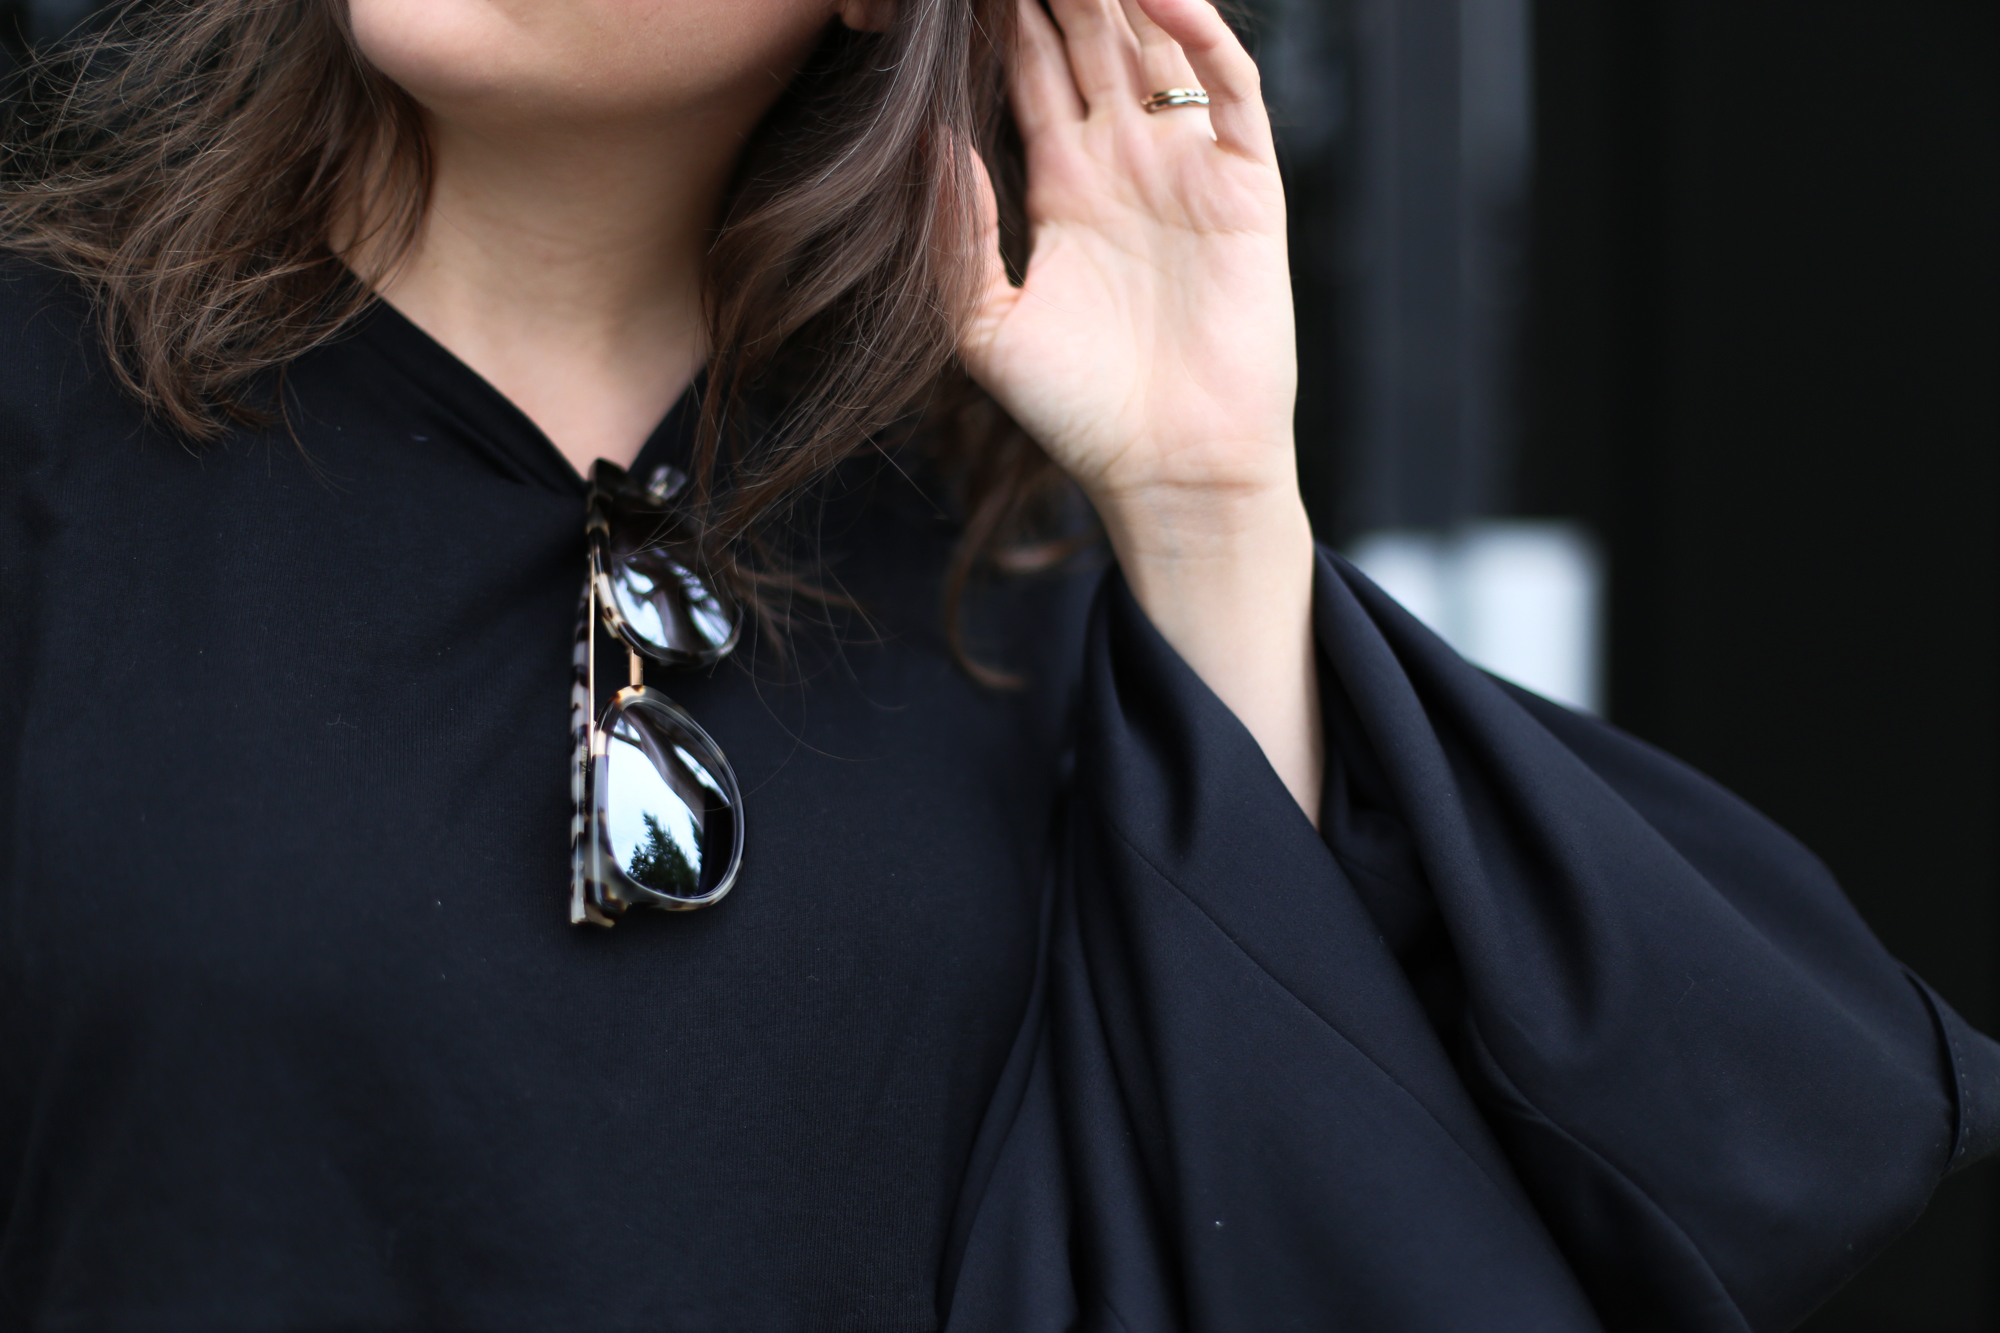 C4 x Susie Wall sunglasses. Can find these at Aritzia and Nordstrom.